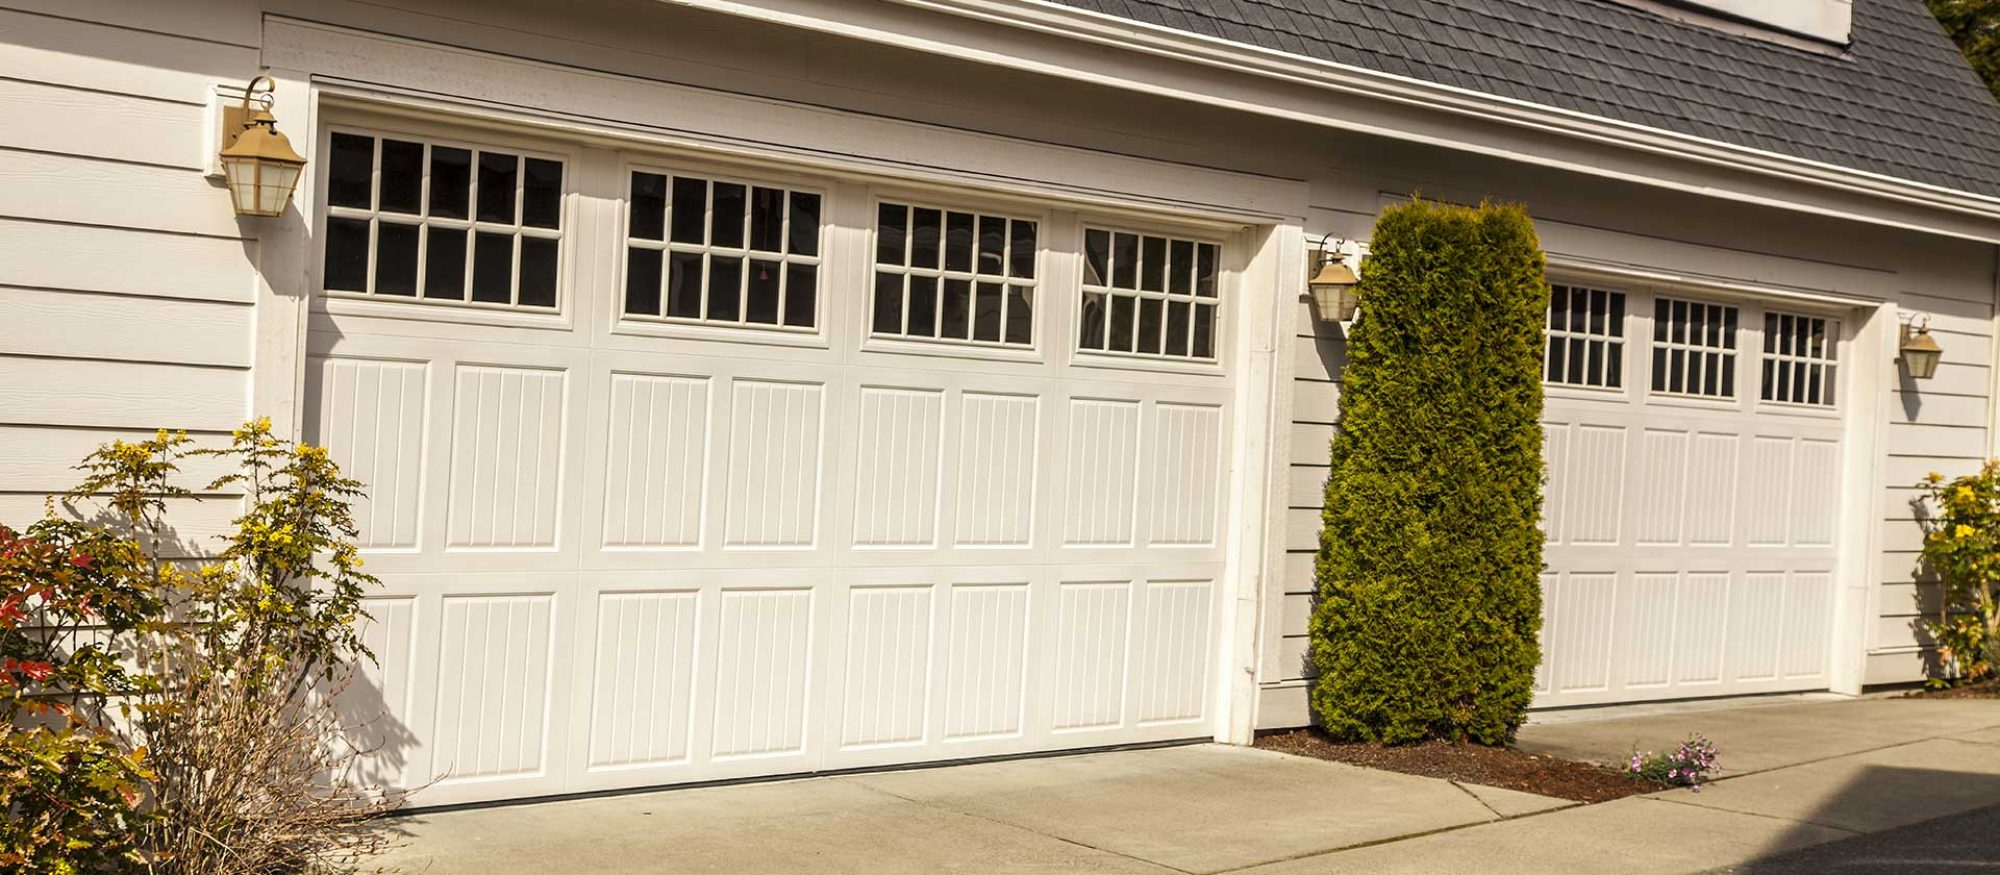 Temecula Garage Door Installation Guide